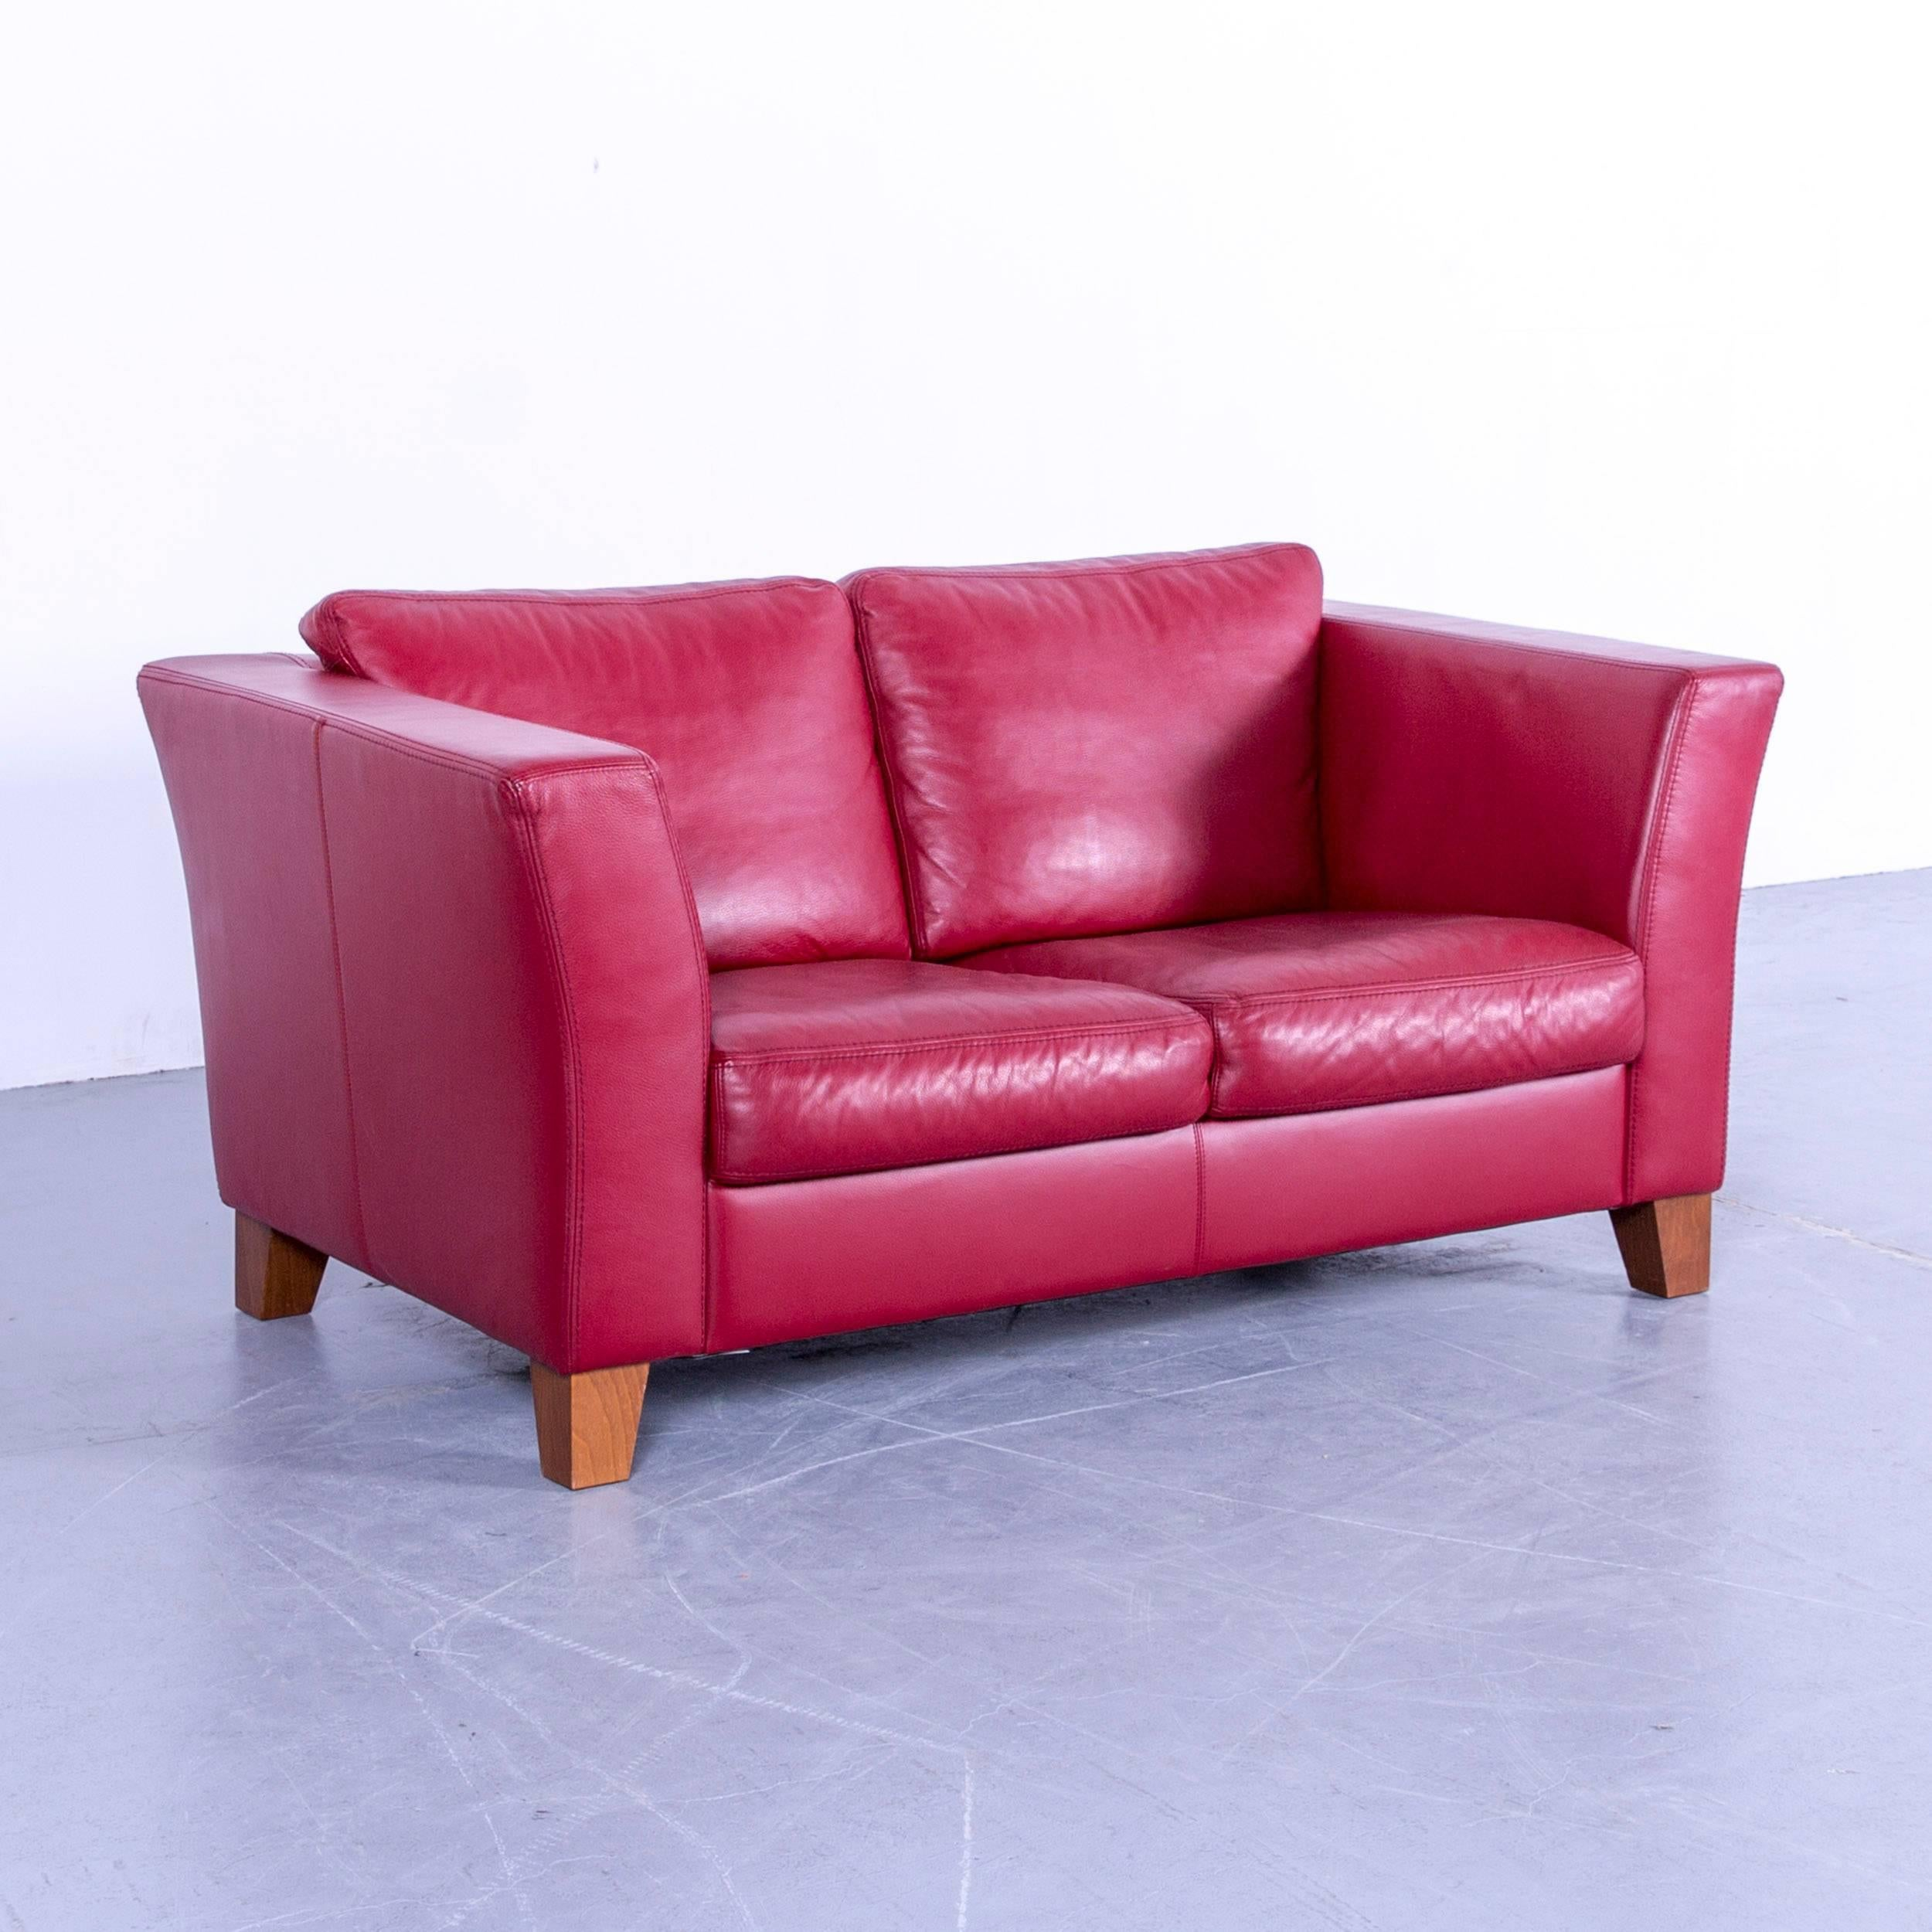 Couch Rot Machalke Designer Leather Sofa Red Two Seat Couch